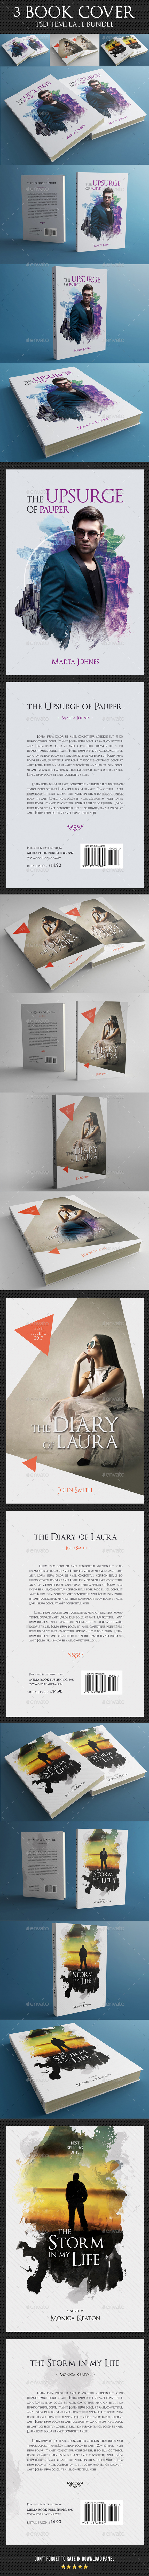 3 in 1 Book Cover Template Bundle 08 - Miscellaneous Print Templates